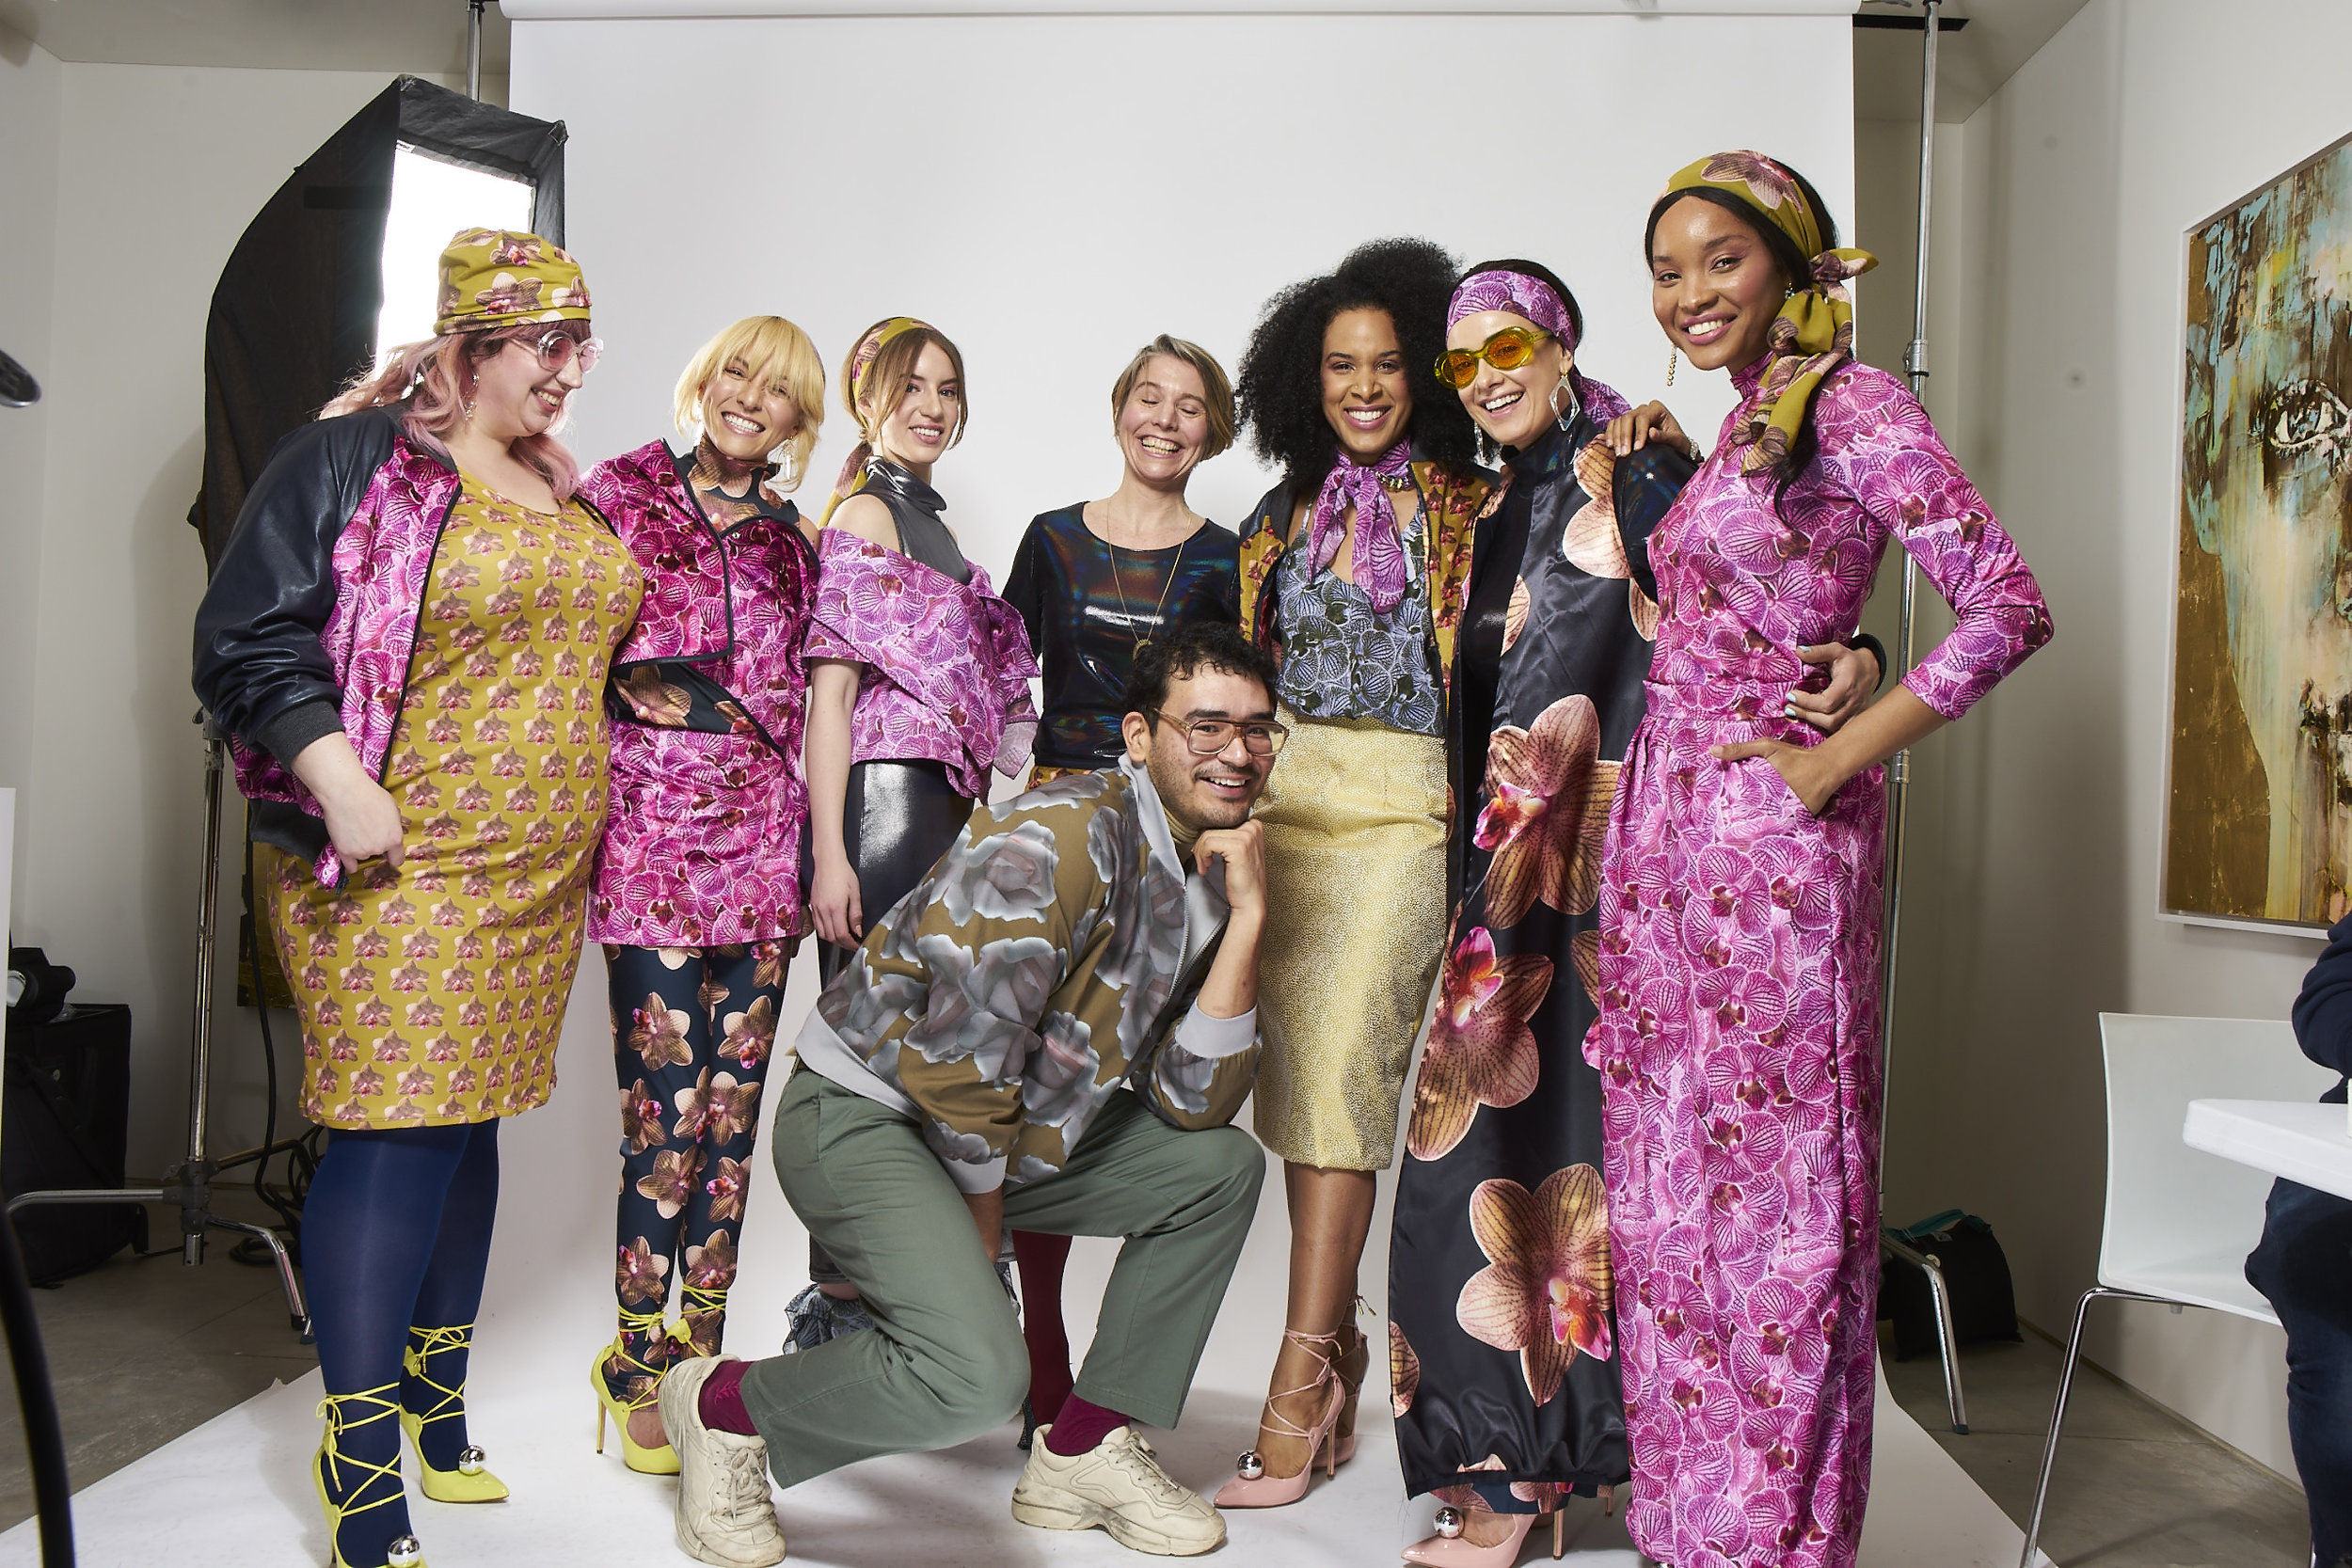 The crew, after our 2018 NYFW live shoot at Galleria Ca D'Oro in Chelsea, NYC. From left to right:  Liz ,  Danie ,  Ada ,  me ,  Phil ,  Maryam ,  Tijana , and  Bibi . Photo credit: Hassan Kinley Photography 2018.